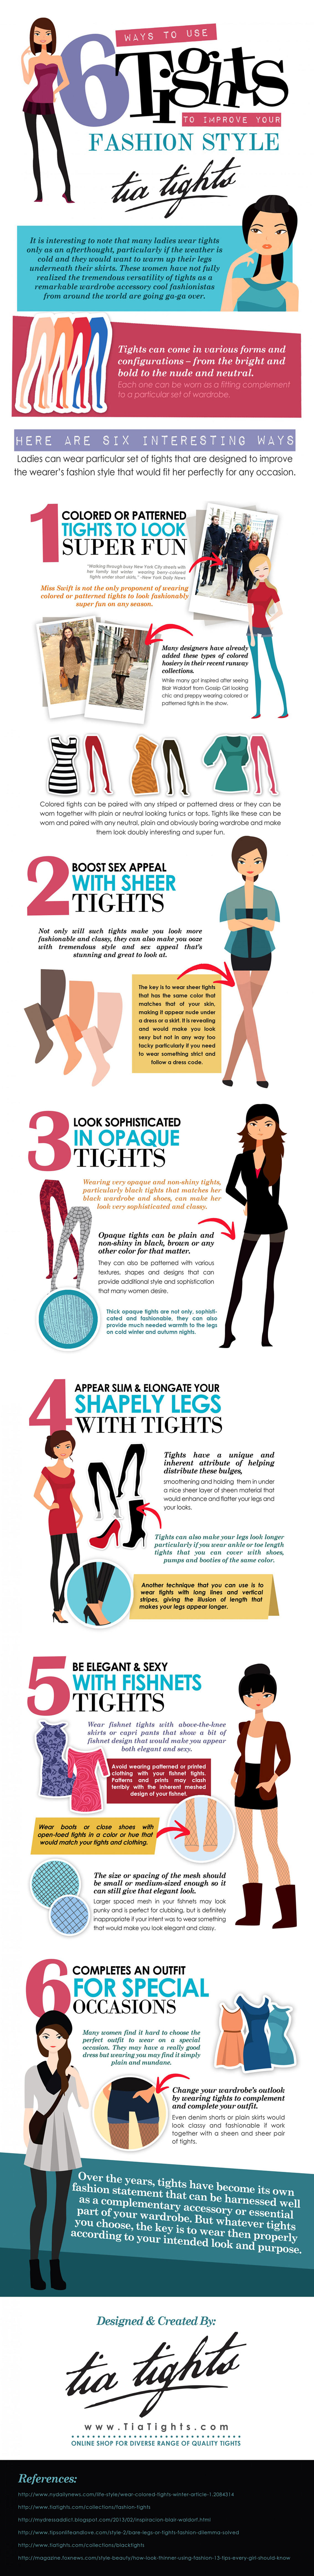 Ways to Use Tights to Improve your Fashion Style Infographic